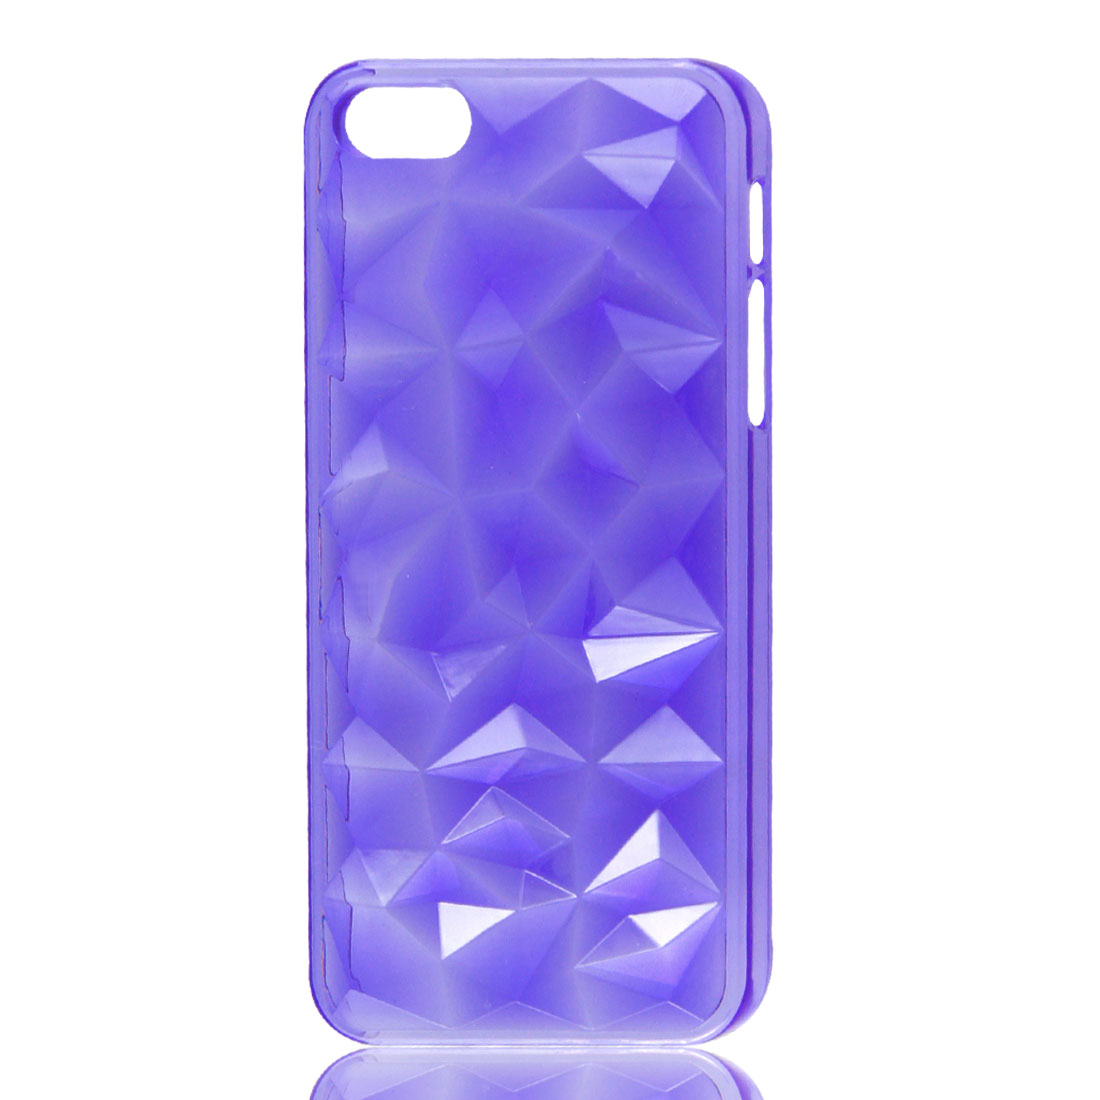 3D Water Cube Hard Back Case Cover Shell Clear Purple for iPhone 5 5G